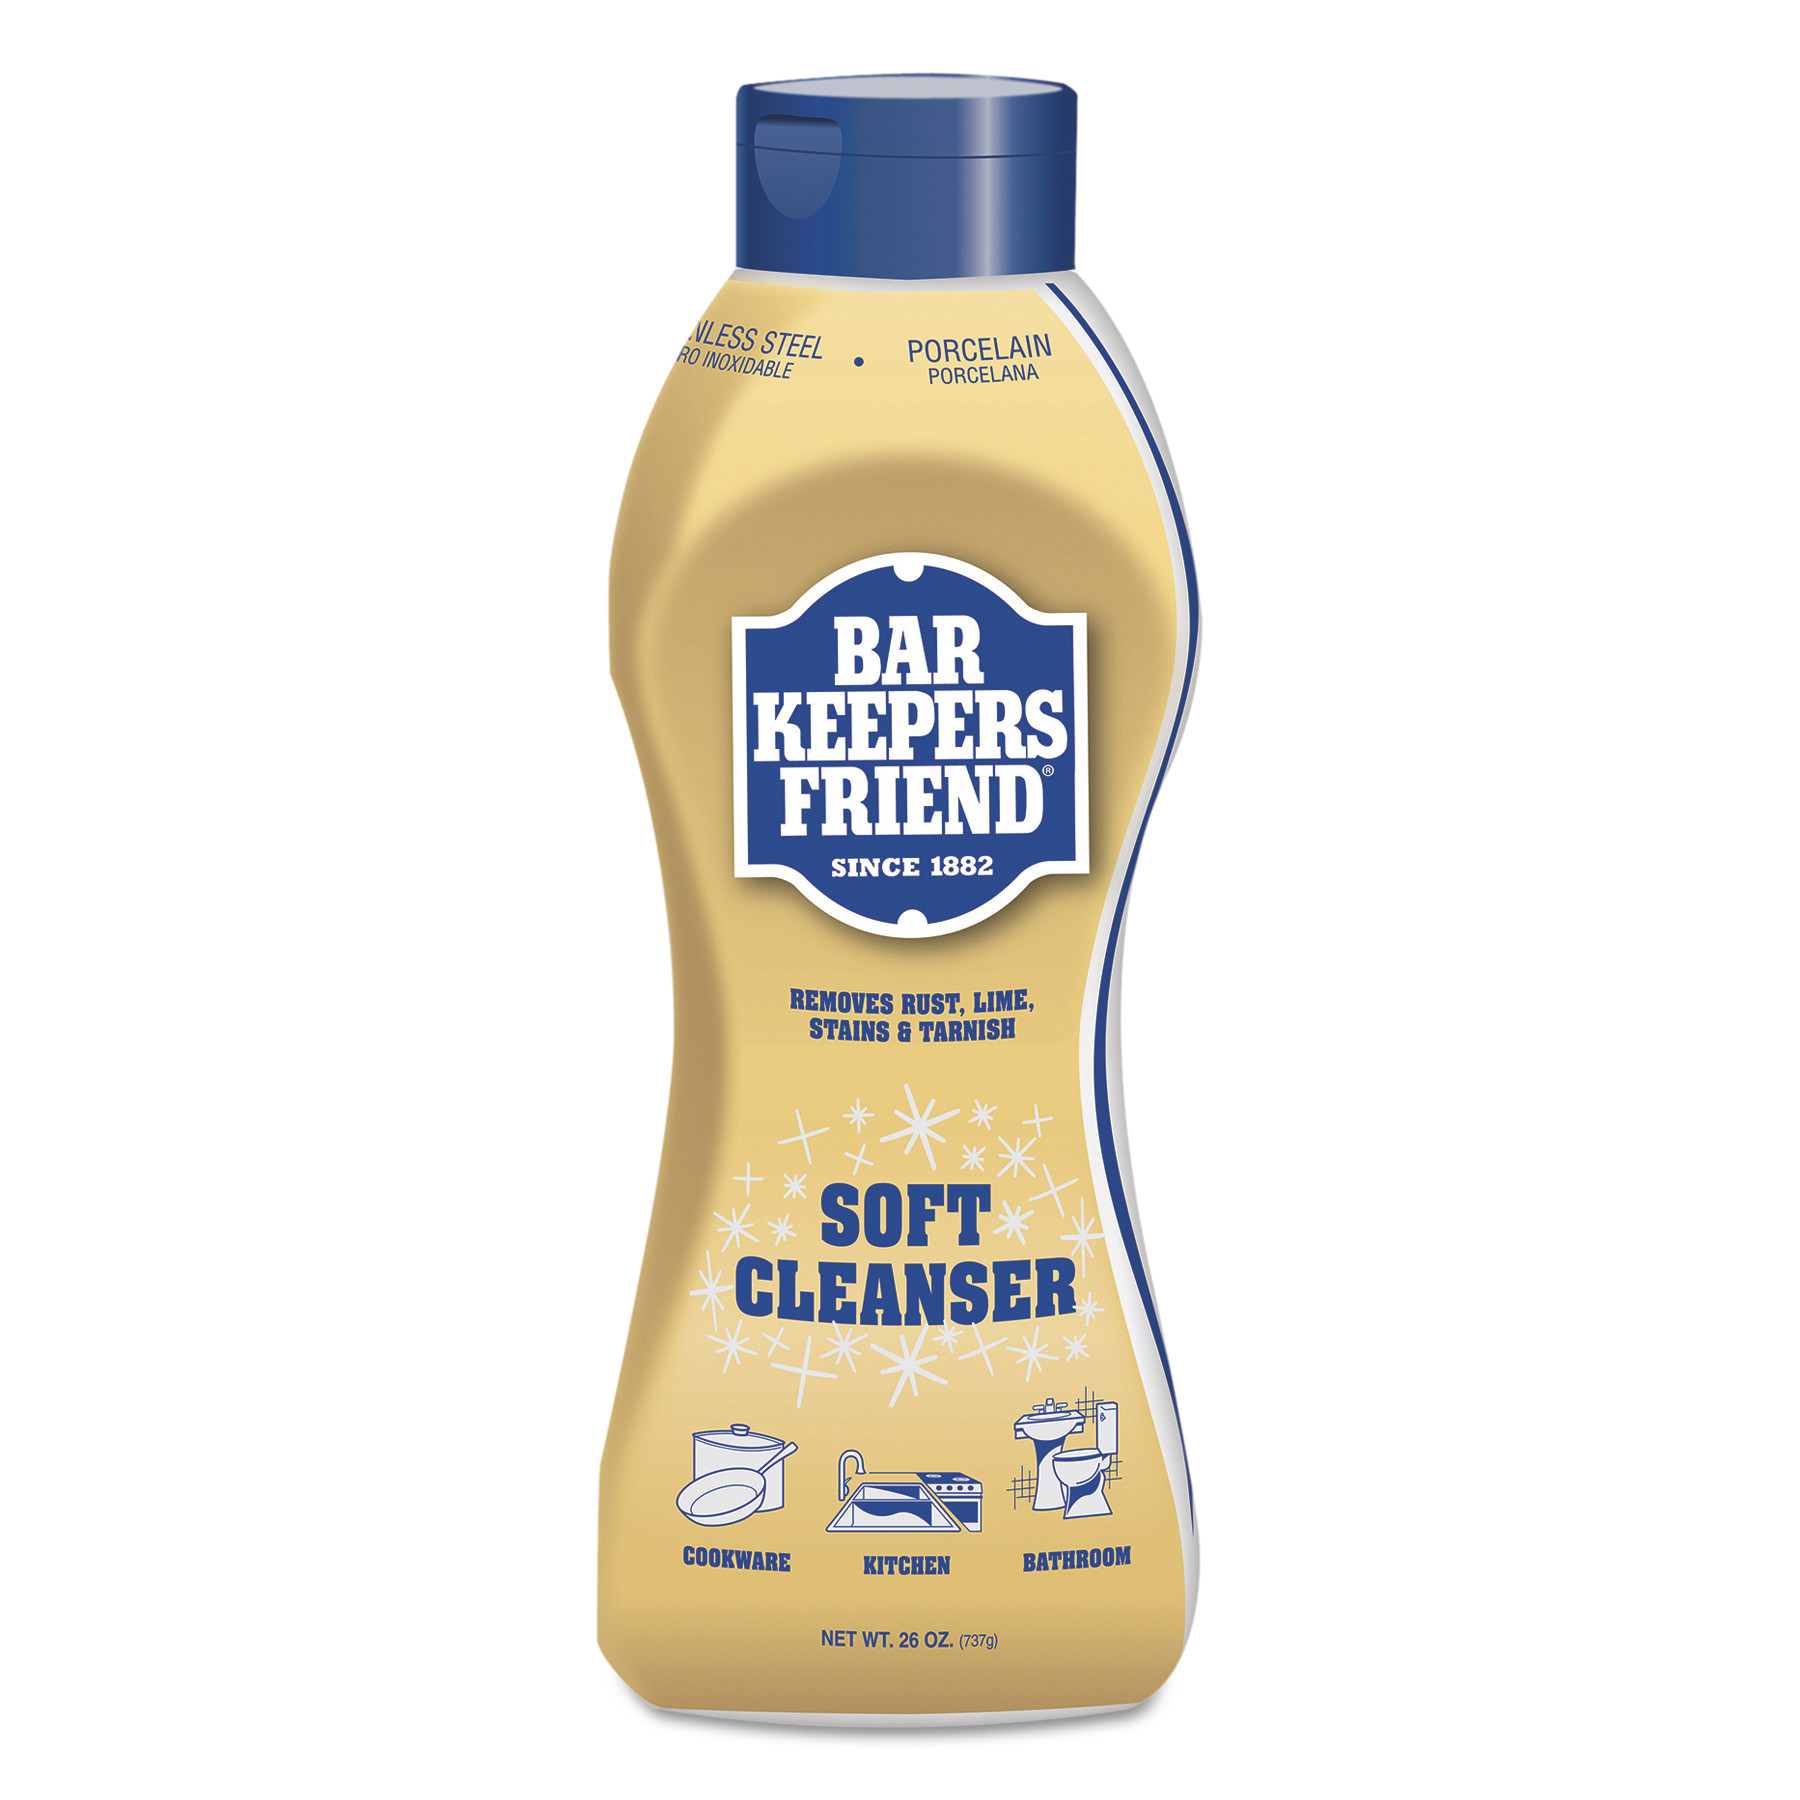 Bar Keepers Friend Soft Cleanser, Citrus, 26 Oz